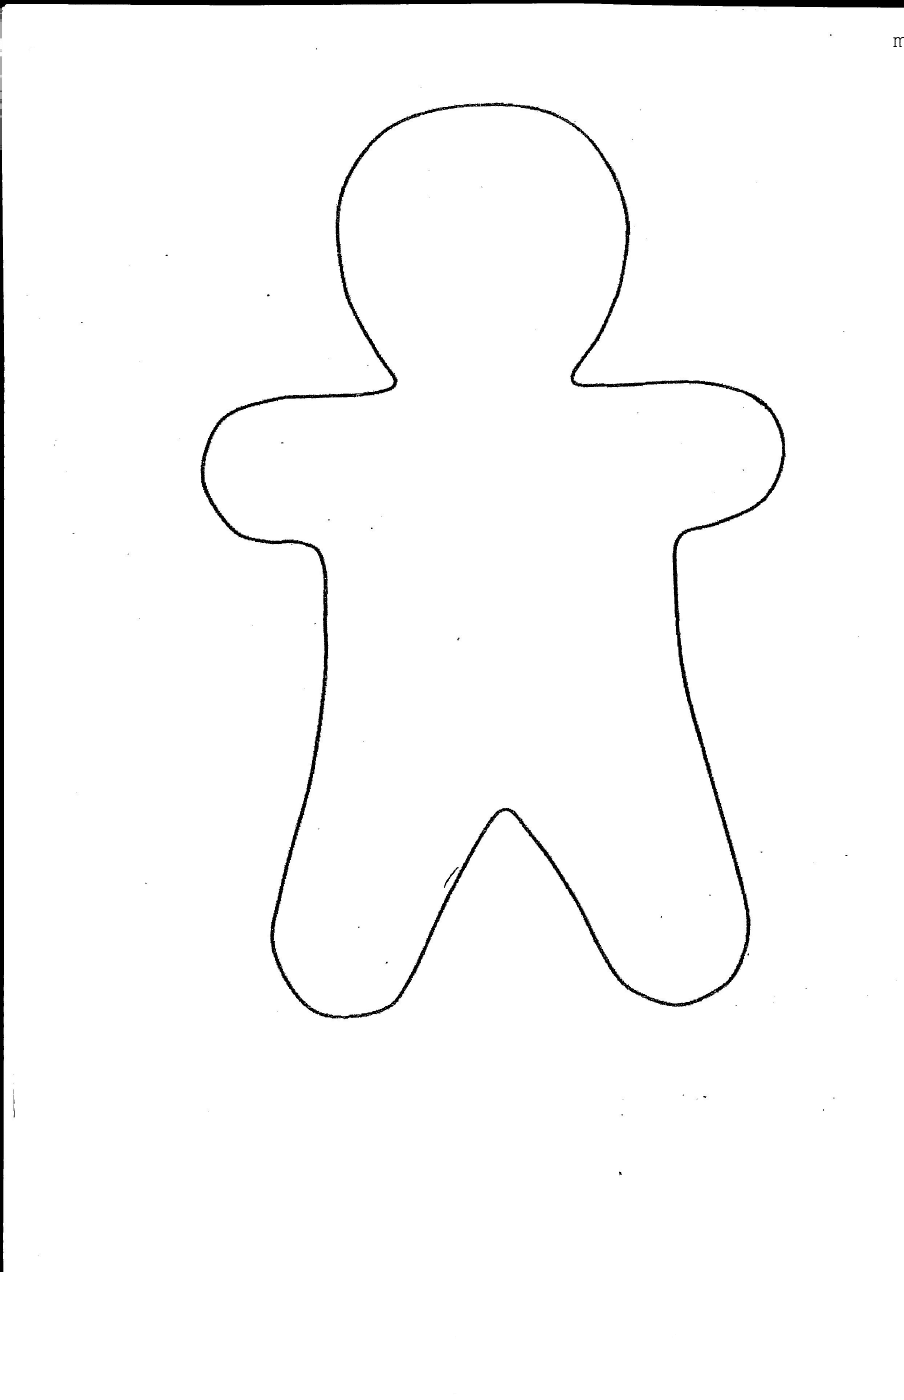 gingerbread man for coloring gingerbread man template clipart coloring page for kids man gingerbread for coloring